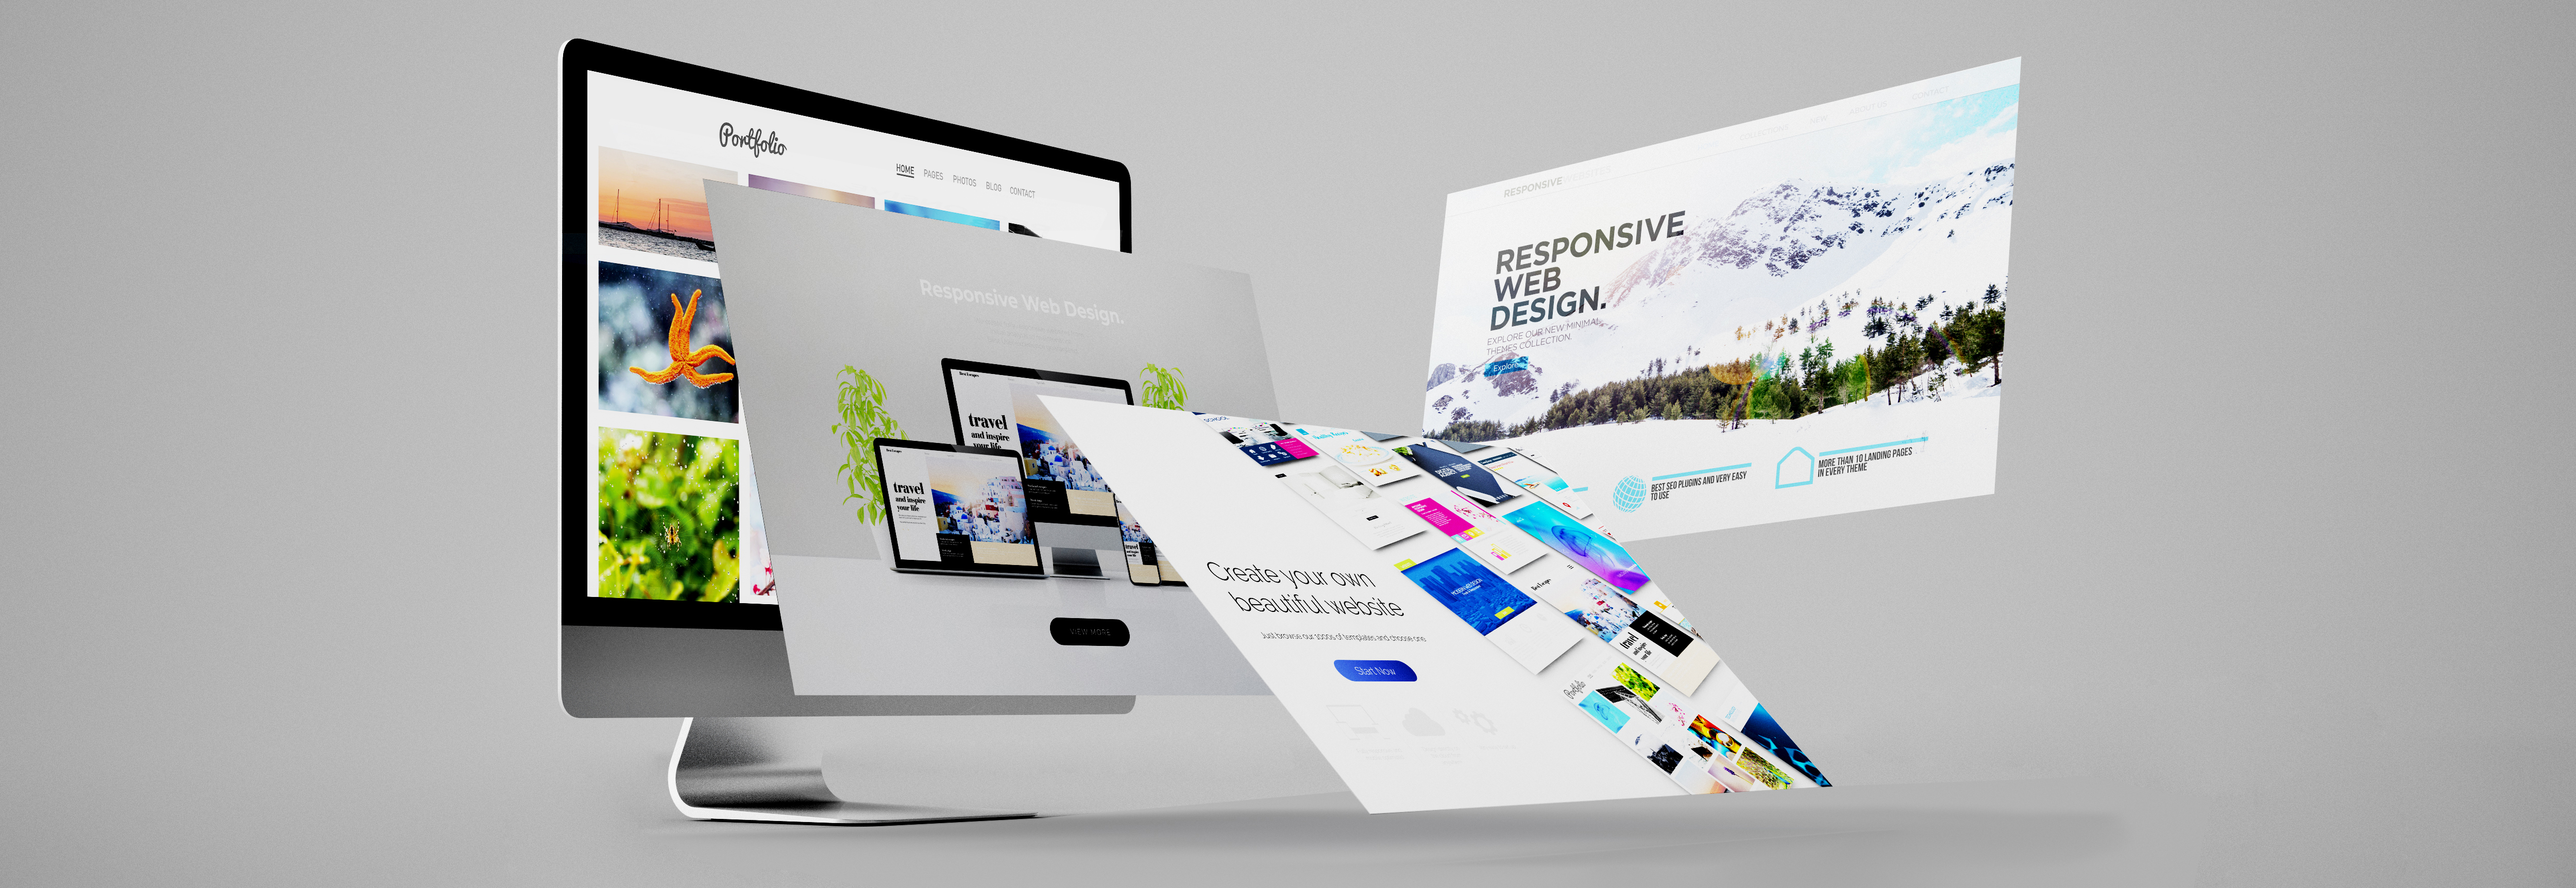 Website design: why is it so important?